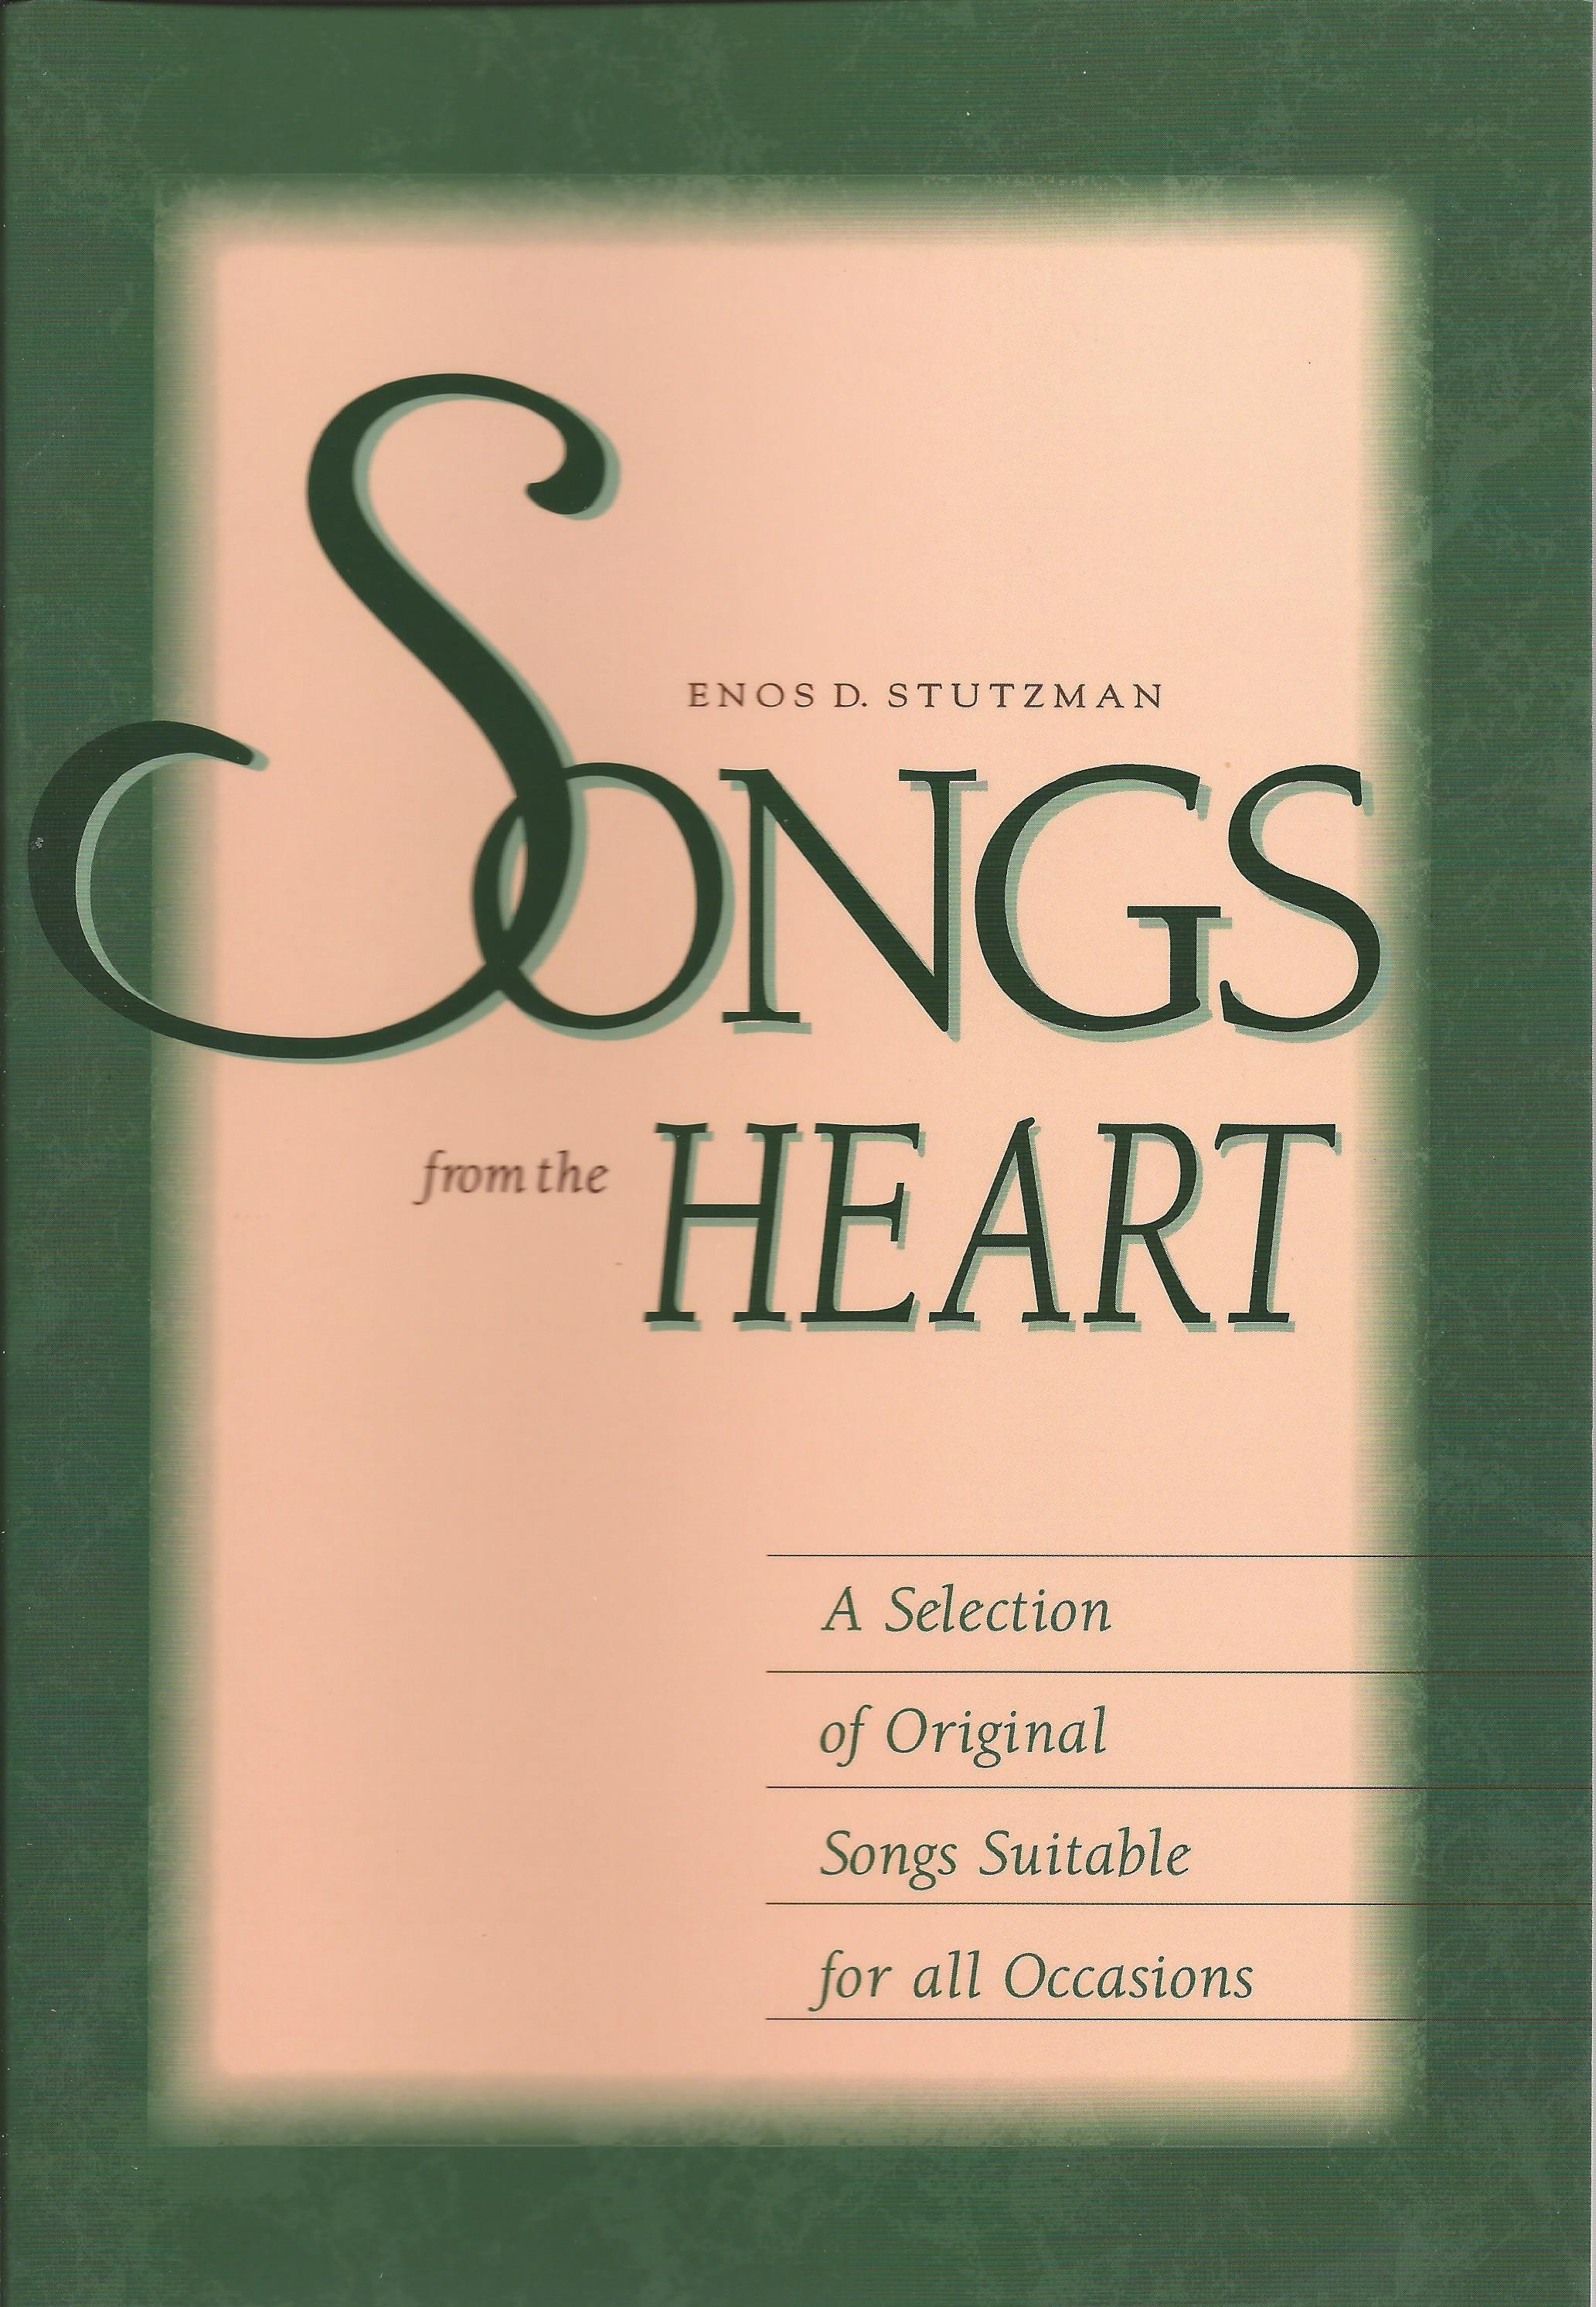 SONGS FROM THE HEART (ENOS D. STUTZMAN)